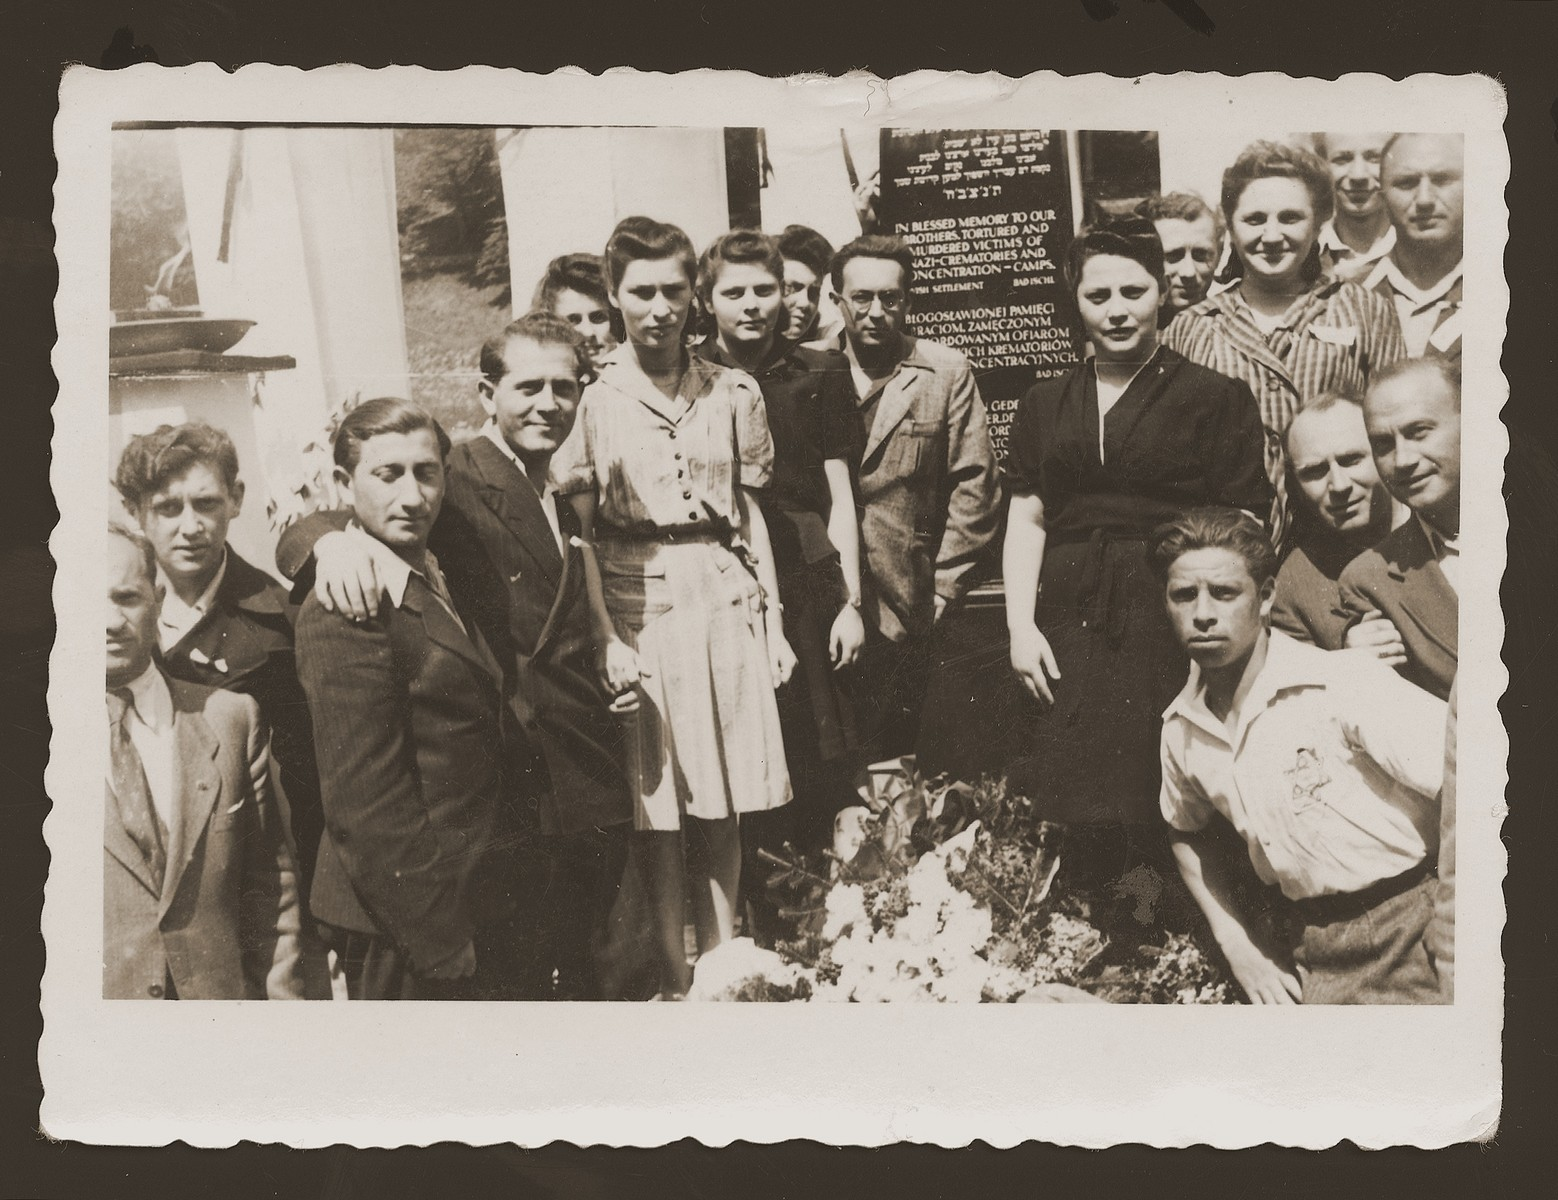 Jewish DPs from the New Palestine displaced persons camp gather around a memorial erected to the Jewish victims of the Nazis.   Among those pictured is Moniek Rozen (third from the left), Kazik Szancer (fourth from the left) and Rela Szancer (fifth from the left).